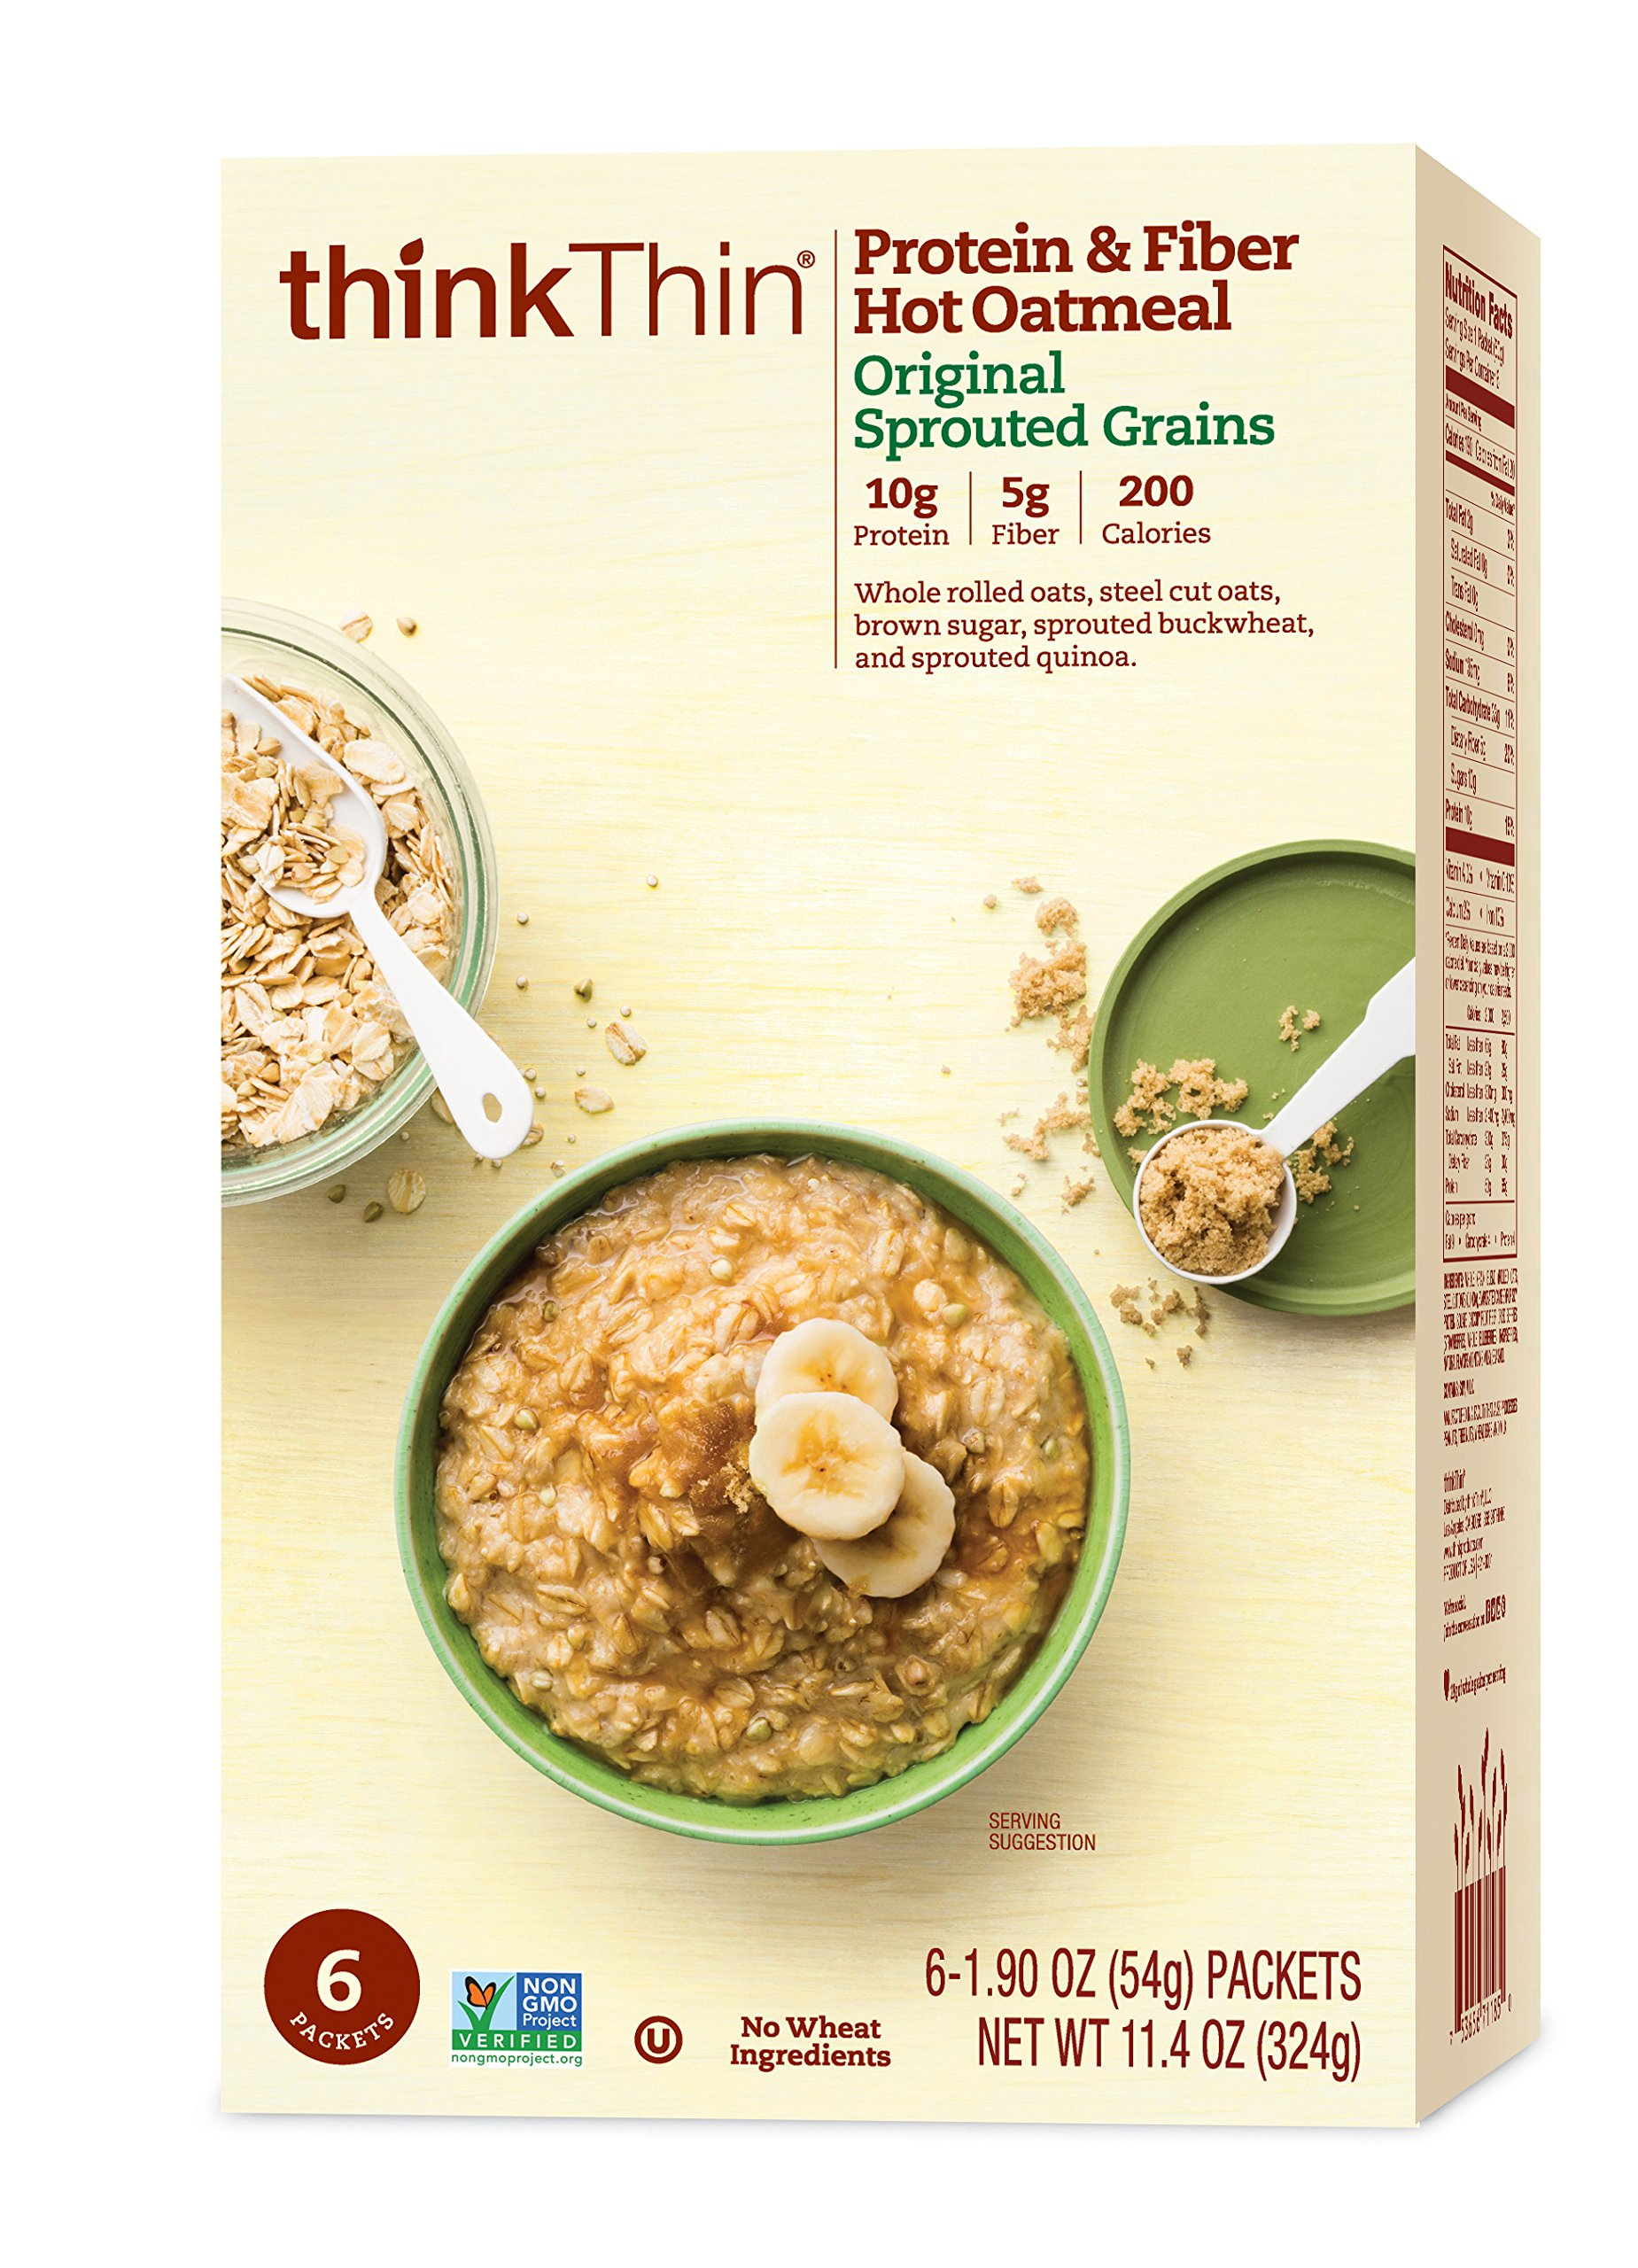 thinkThin Protein & Fiber Hot Oatmeal, Original Sprouted Grains, 6-1.90 oz Packets per Box (6 Boxes)